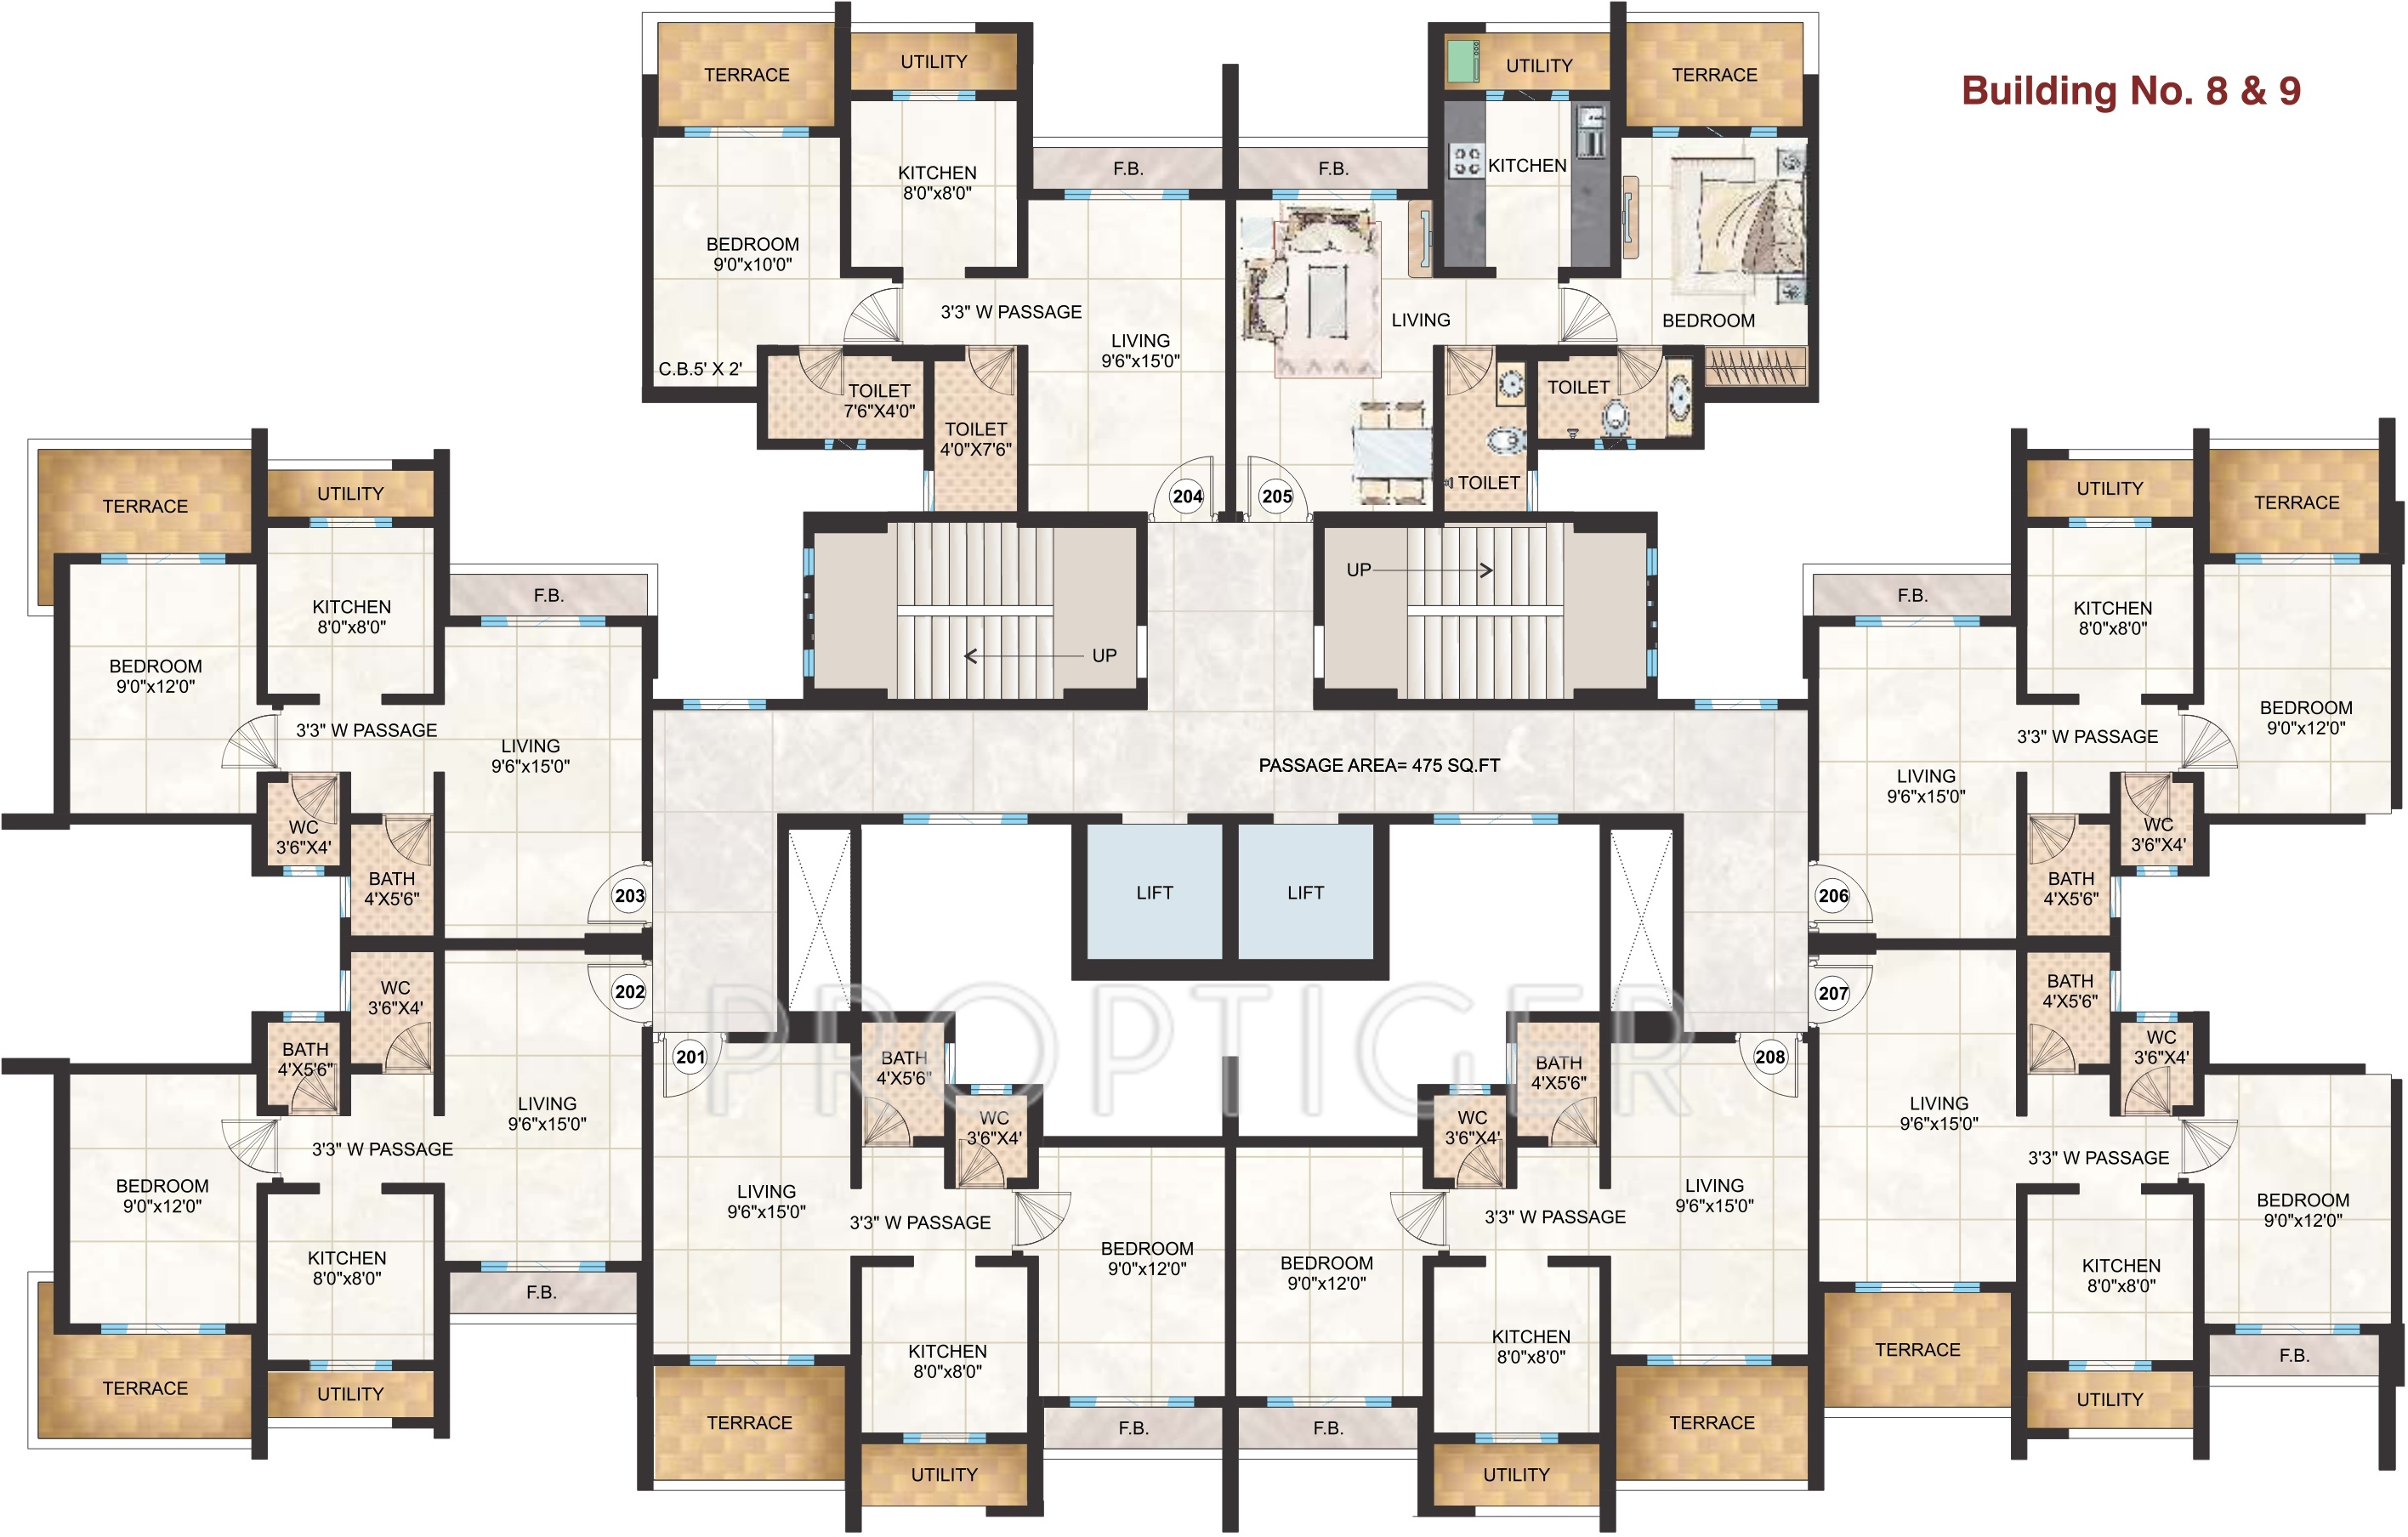 6 unit apartment building floor plans thefloors co for 6 unit apartment building plans